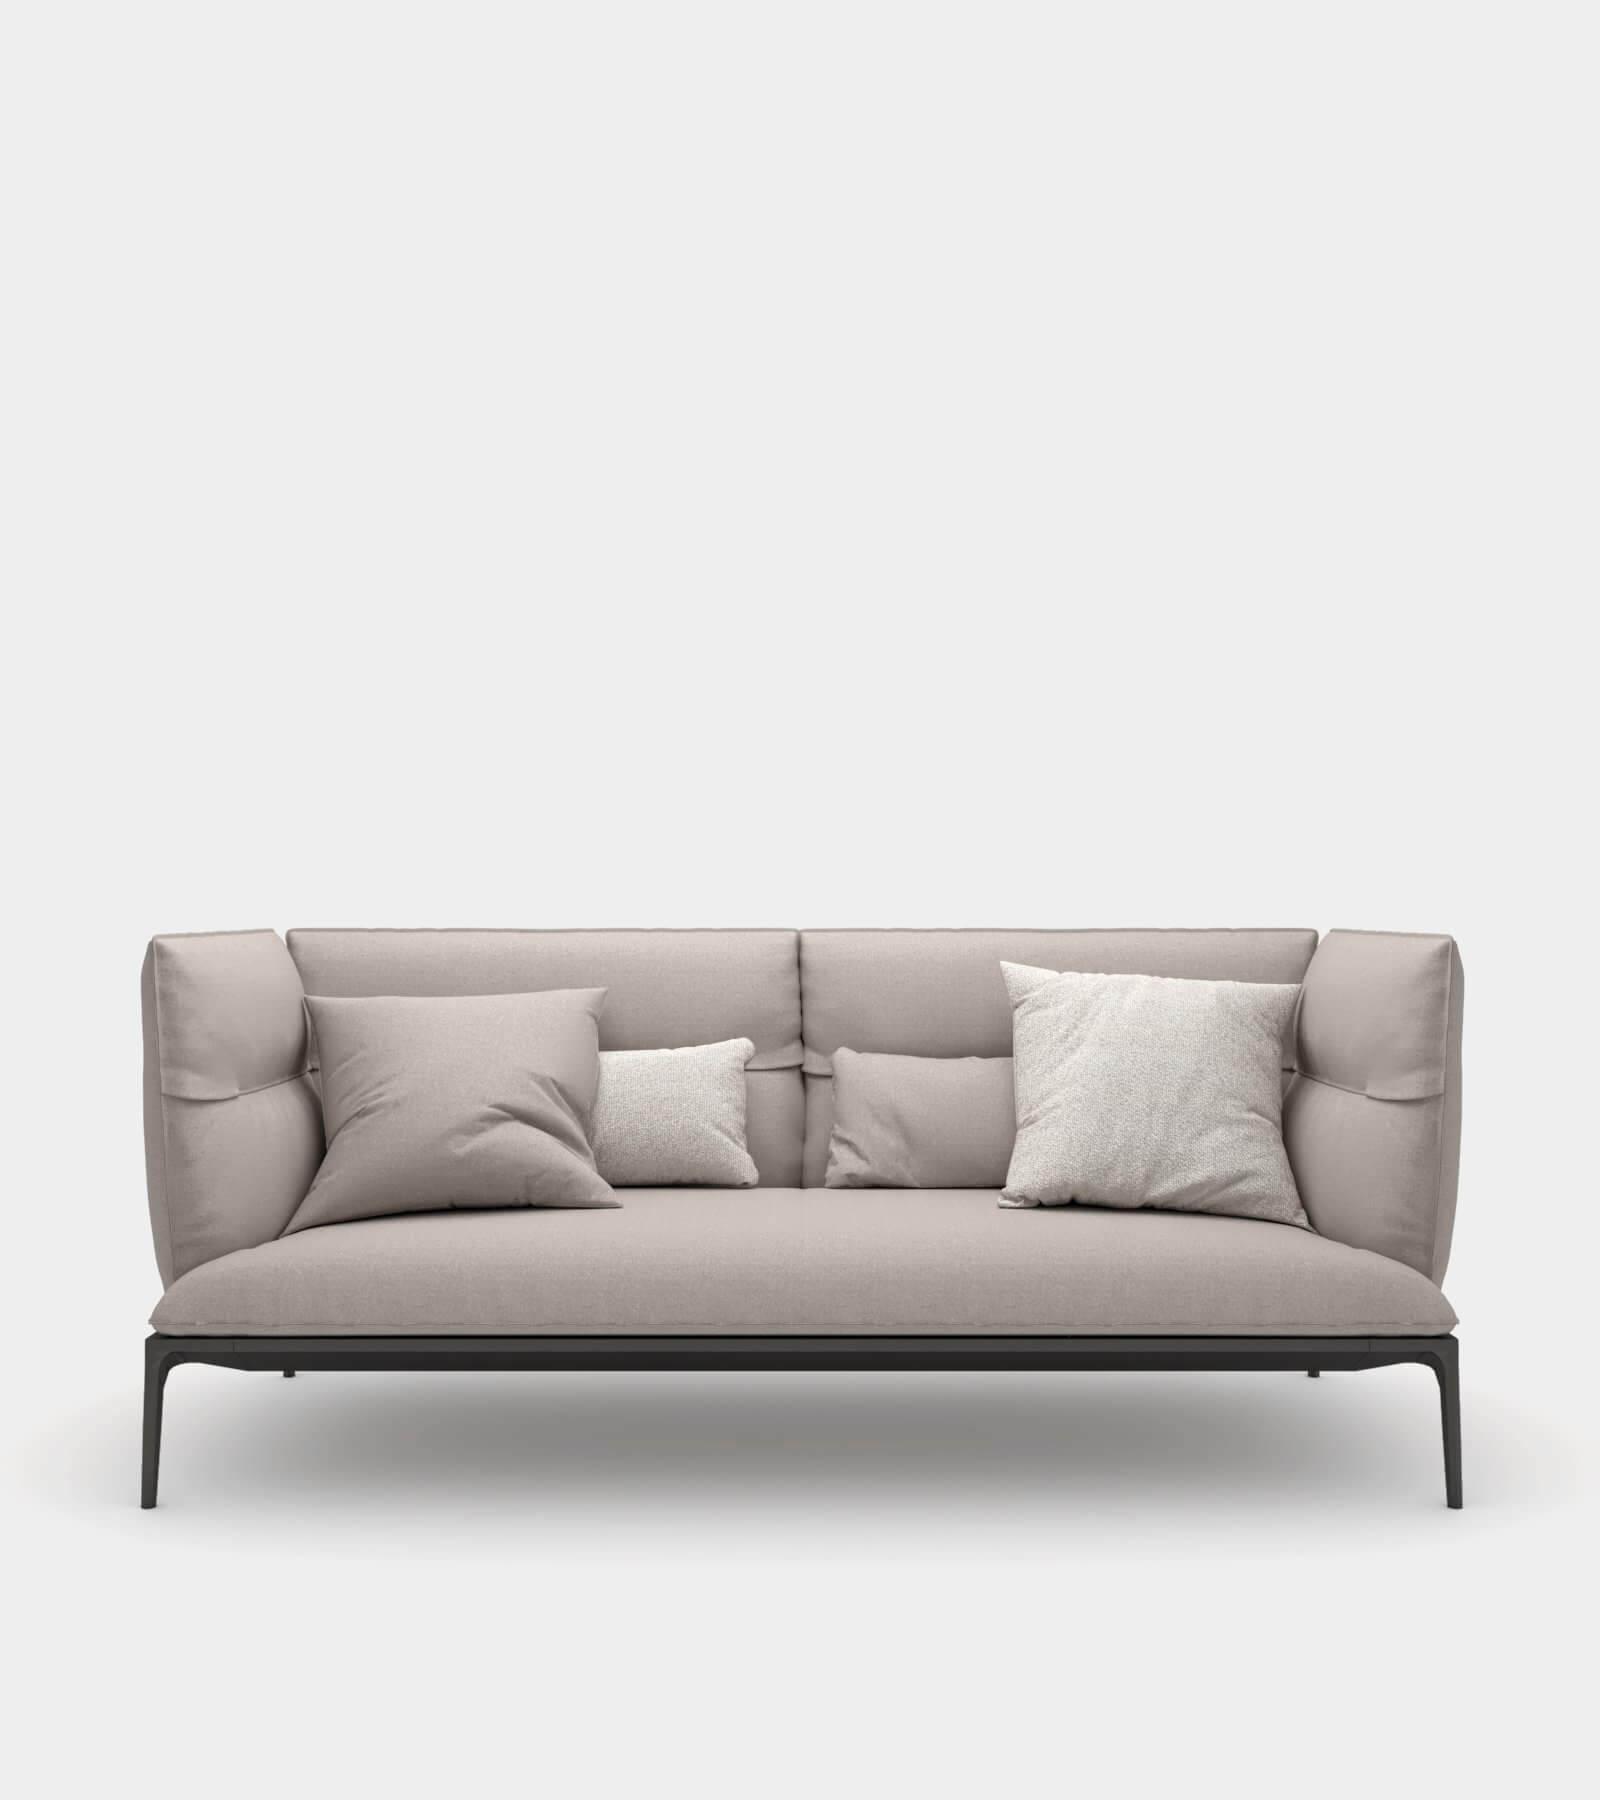 Sofa with high backrest-12 3D Model